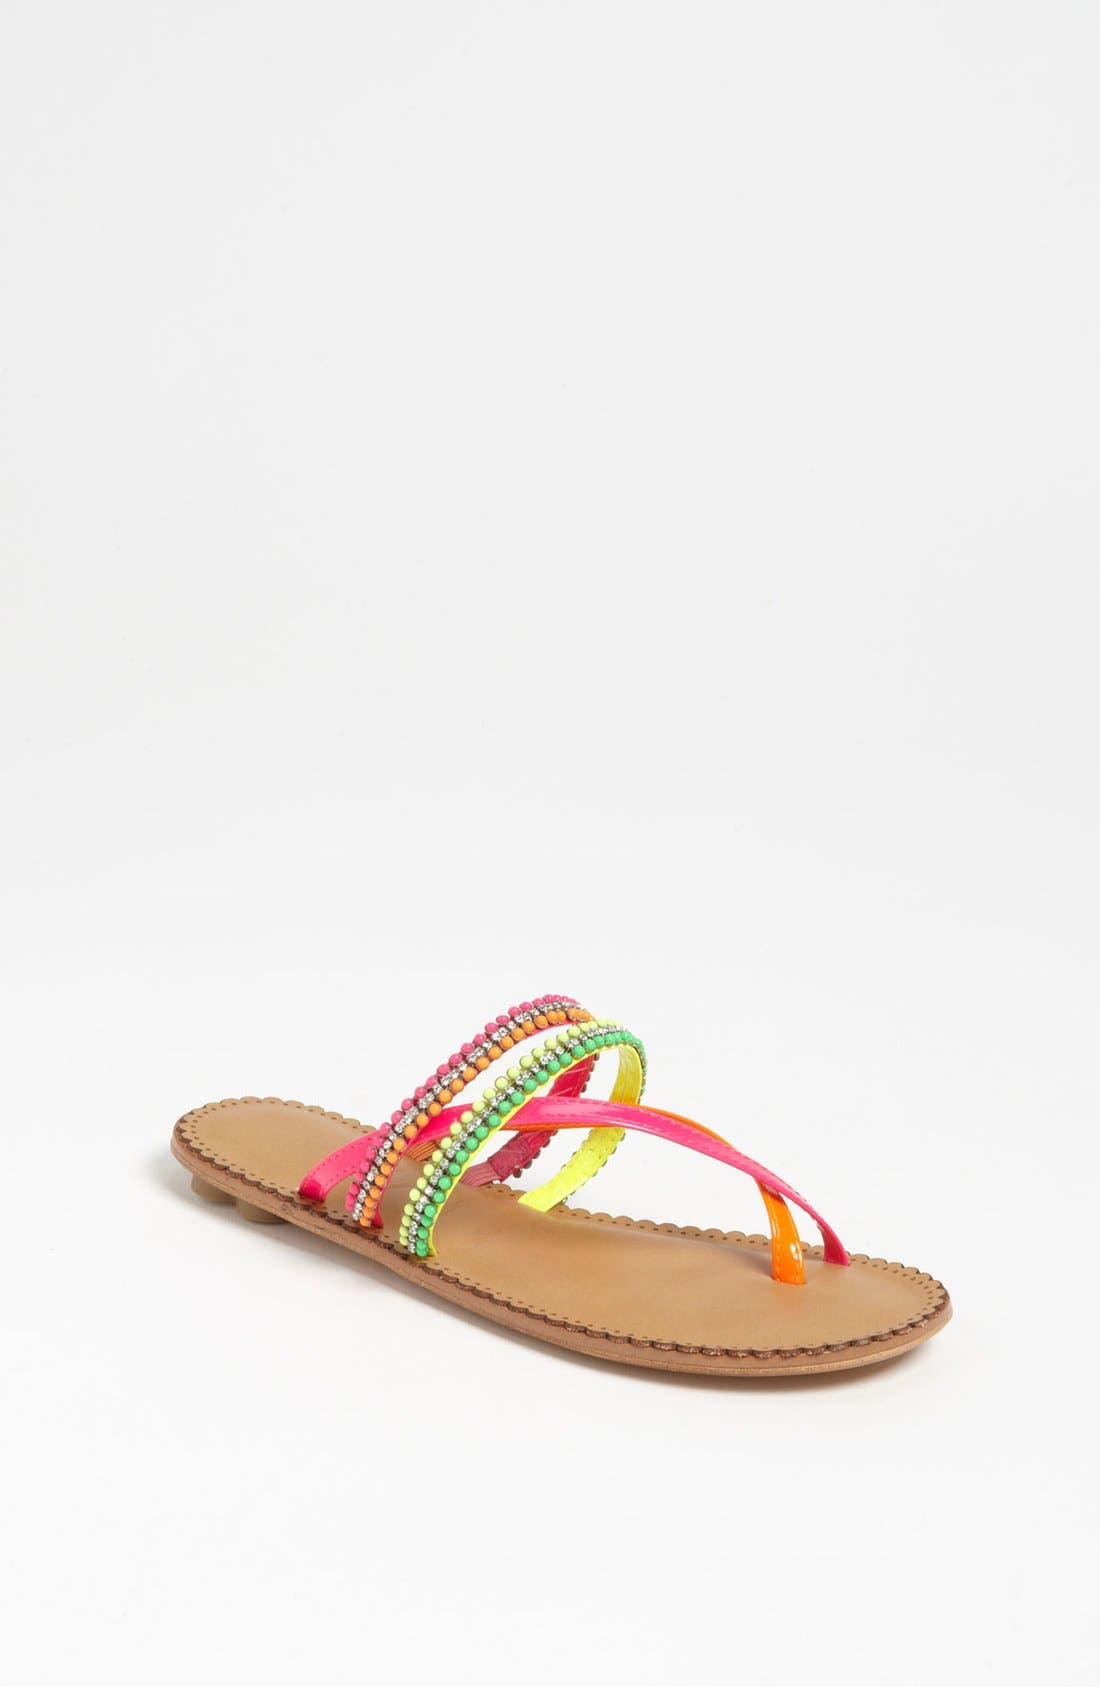 Main Image - Lucky Sole 'Piazza' Sandal (Little Kid & Big Kid)